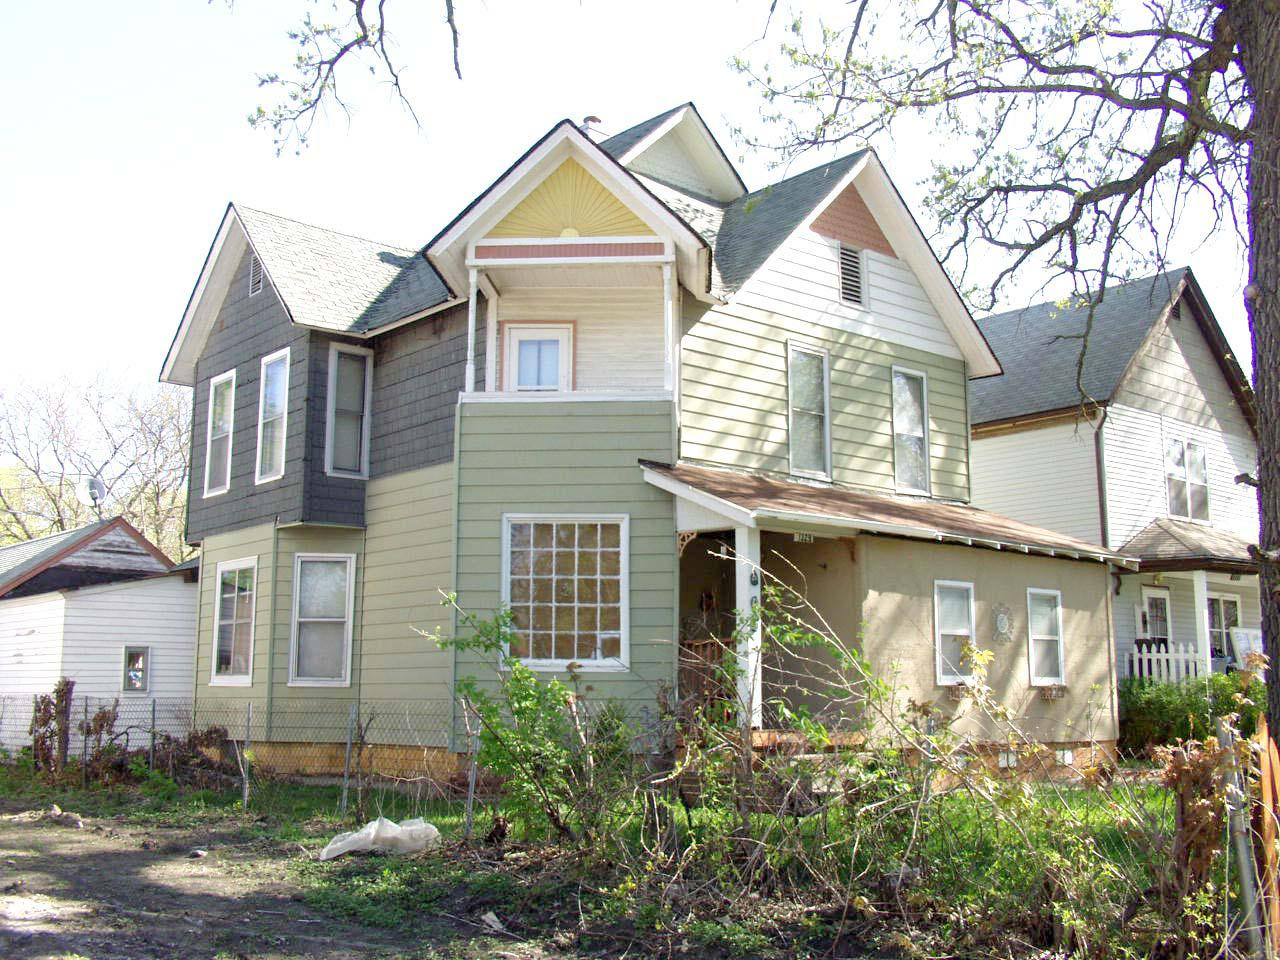 Des Moines, Iowa IA For Sale By Owner, Iowa FSBO Home in Des Moines IA, HARRISON AVE